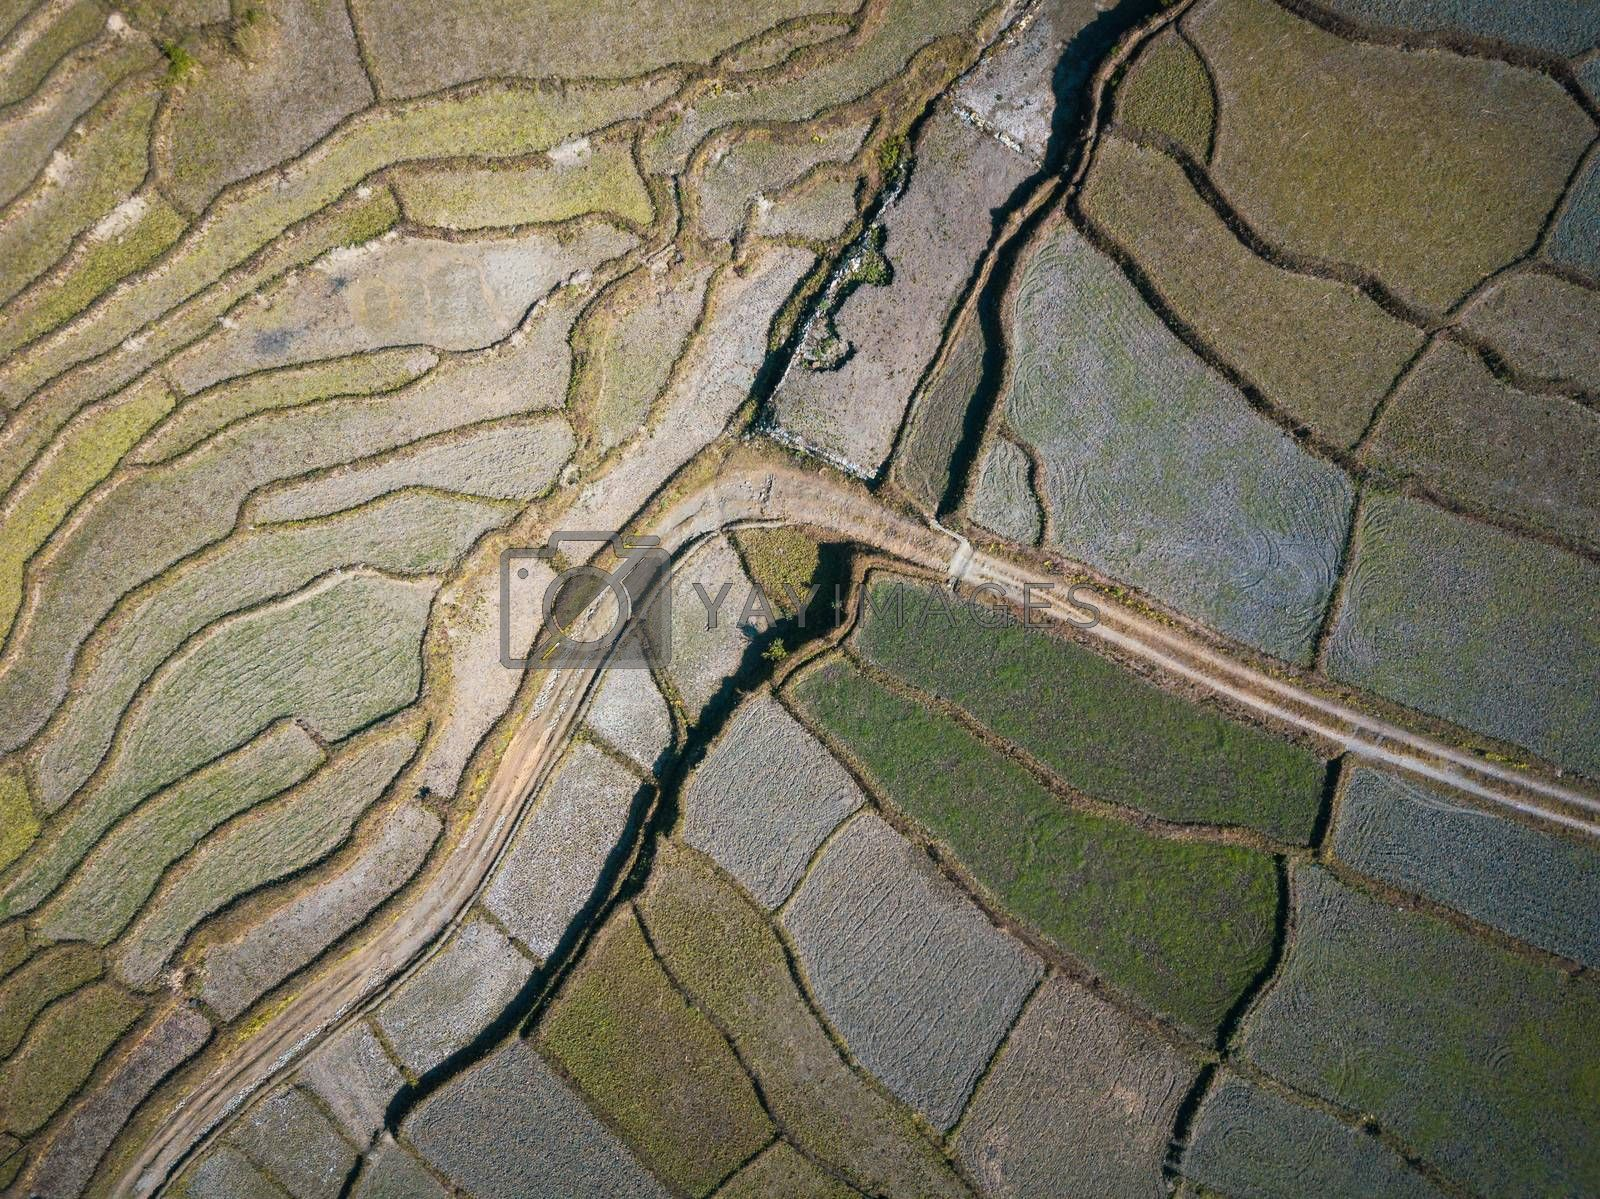 Aerial view of a dirt road accross paddy fields in Nepal. Winter season.